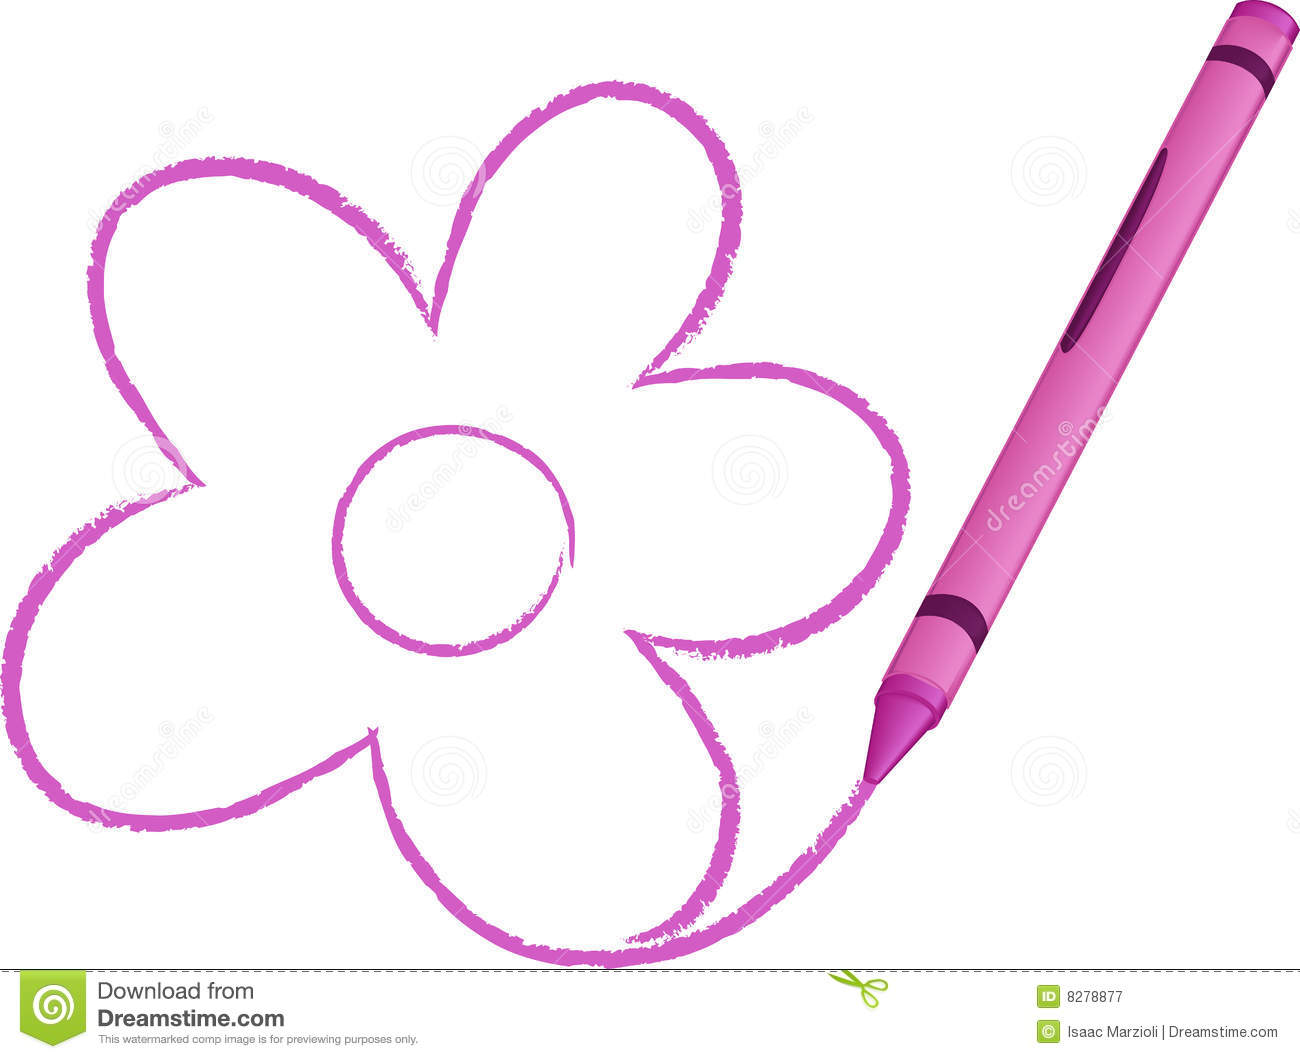 Crayon Drawn Flower Vector Illustration Royalty Free Stock